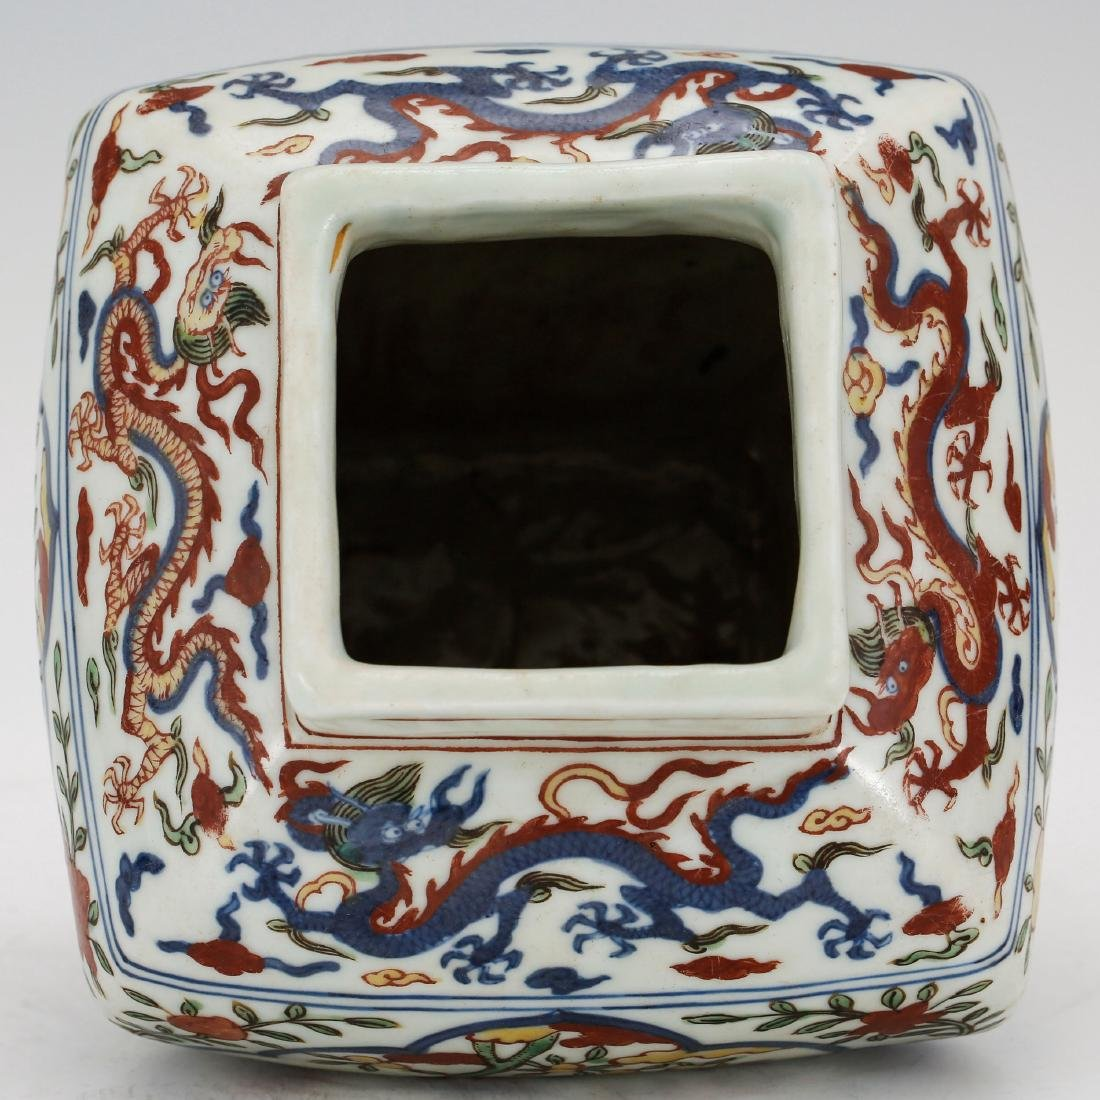 CHINESE MING DYNASTY WUCAI PORCELAIN JAR - 3